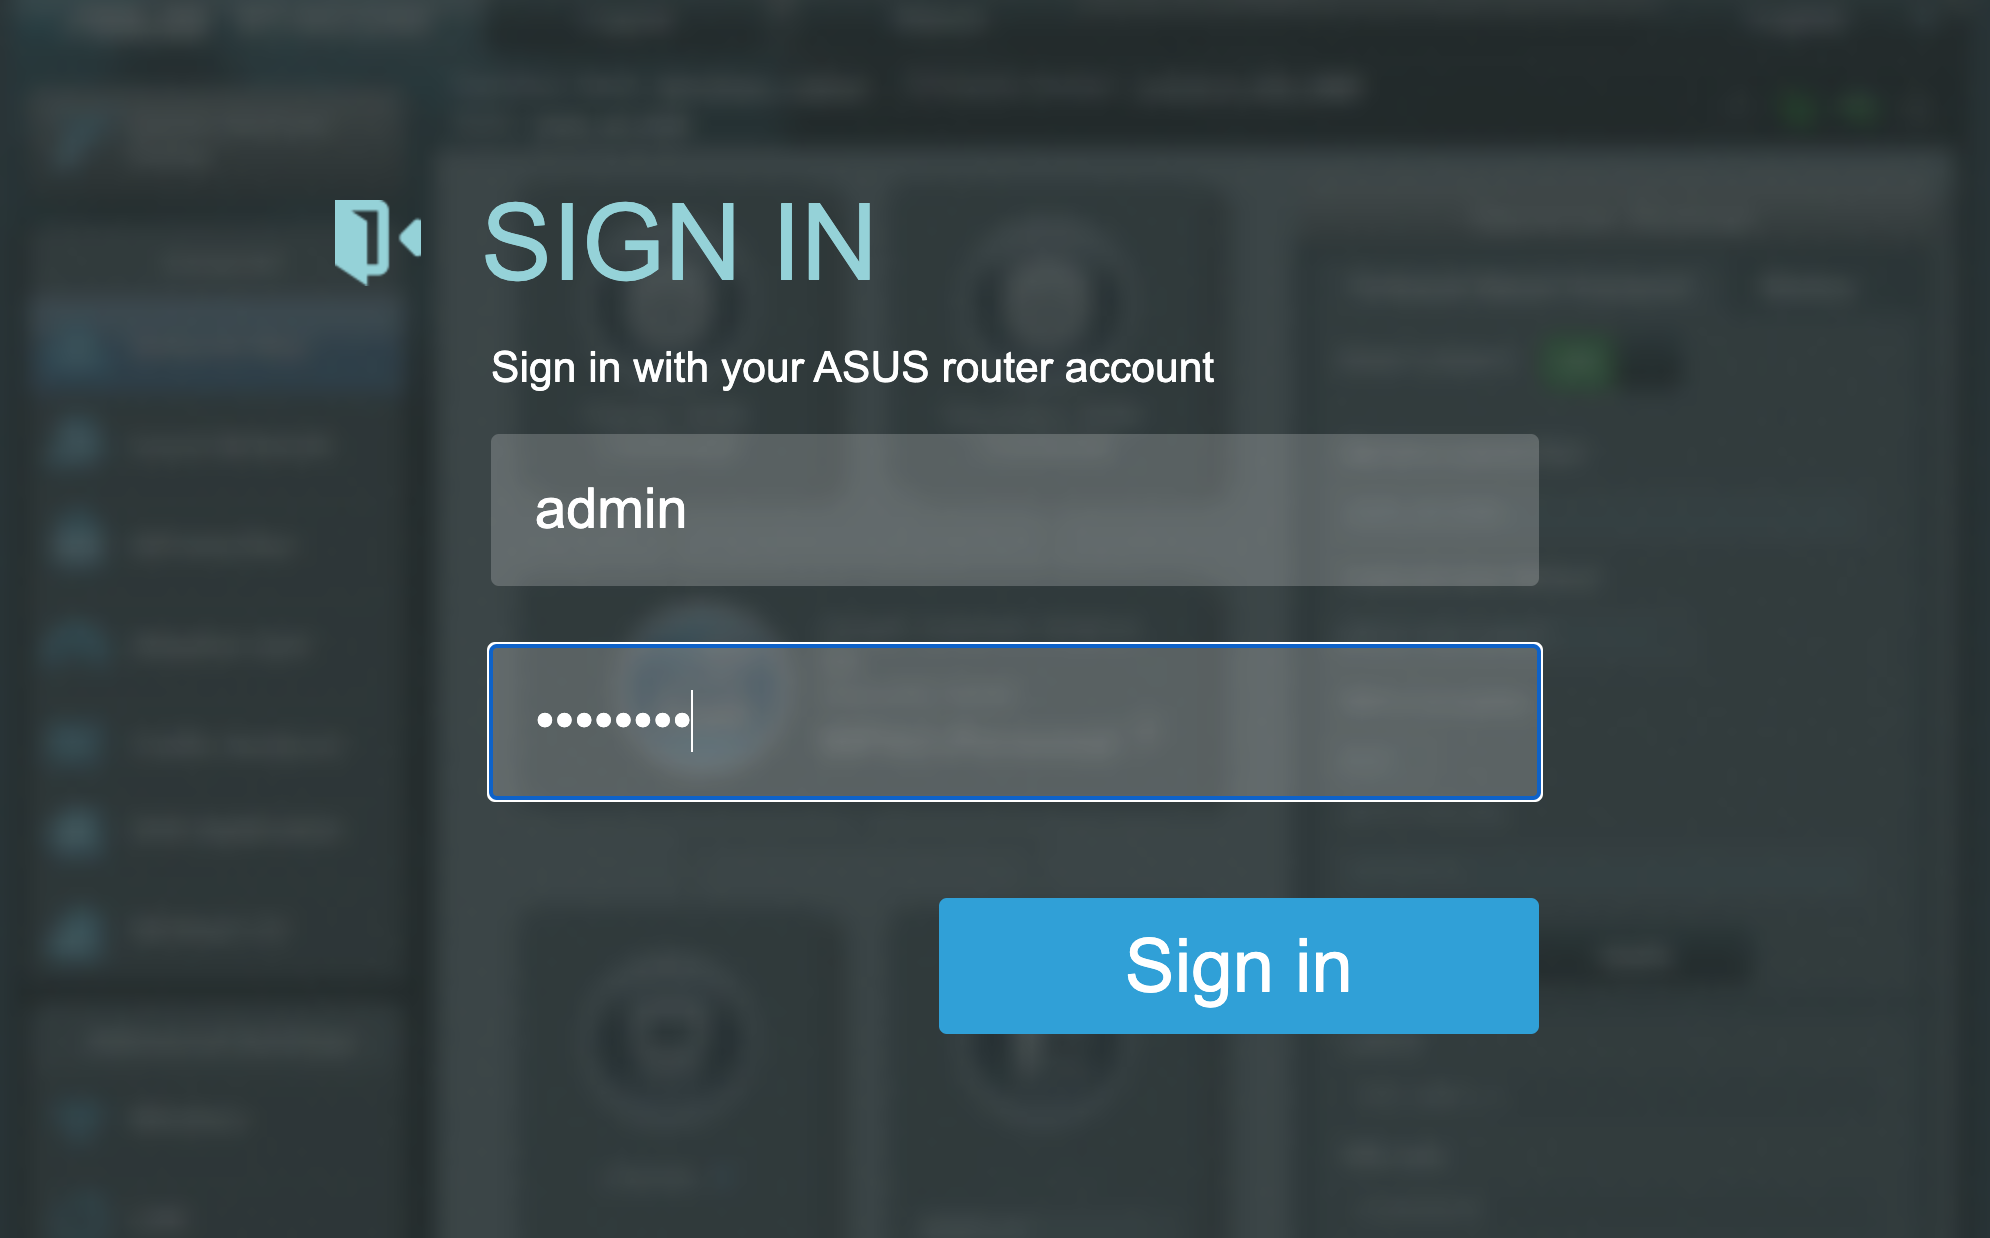 Router login screen, showing two fields to input the username and password